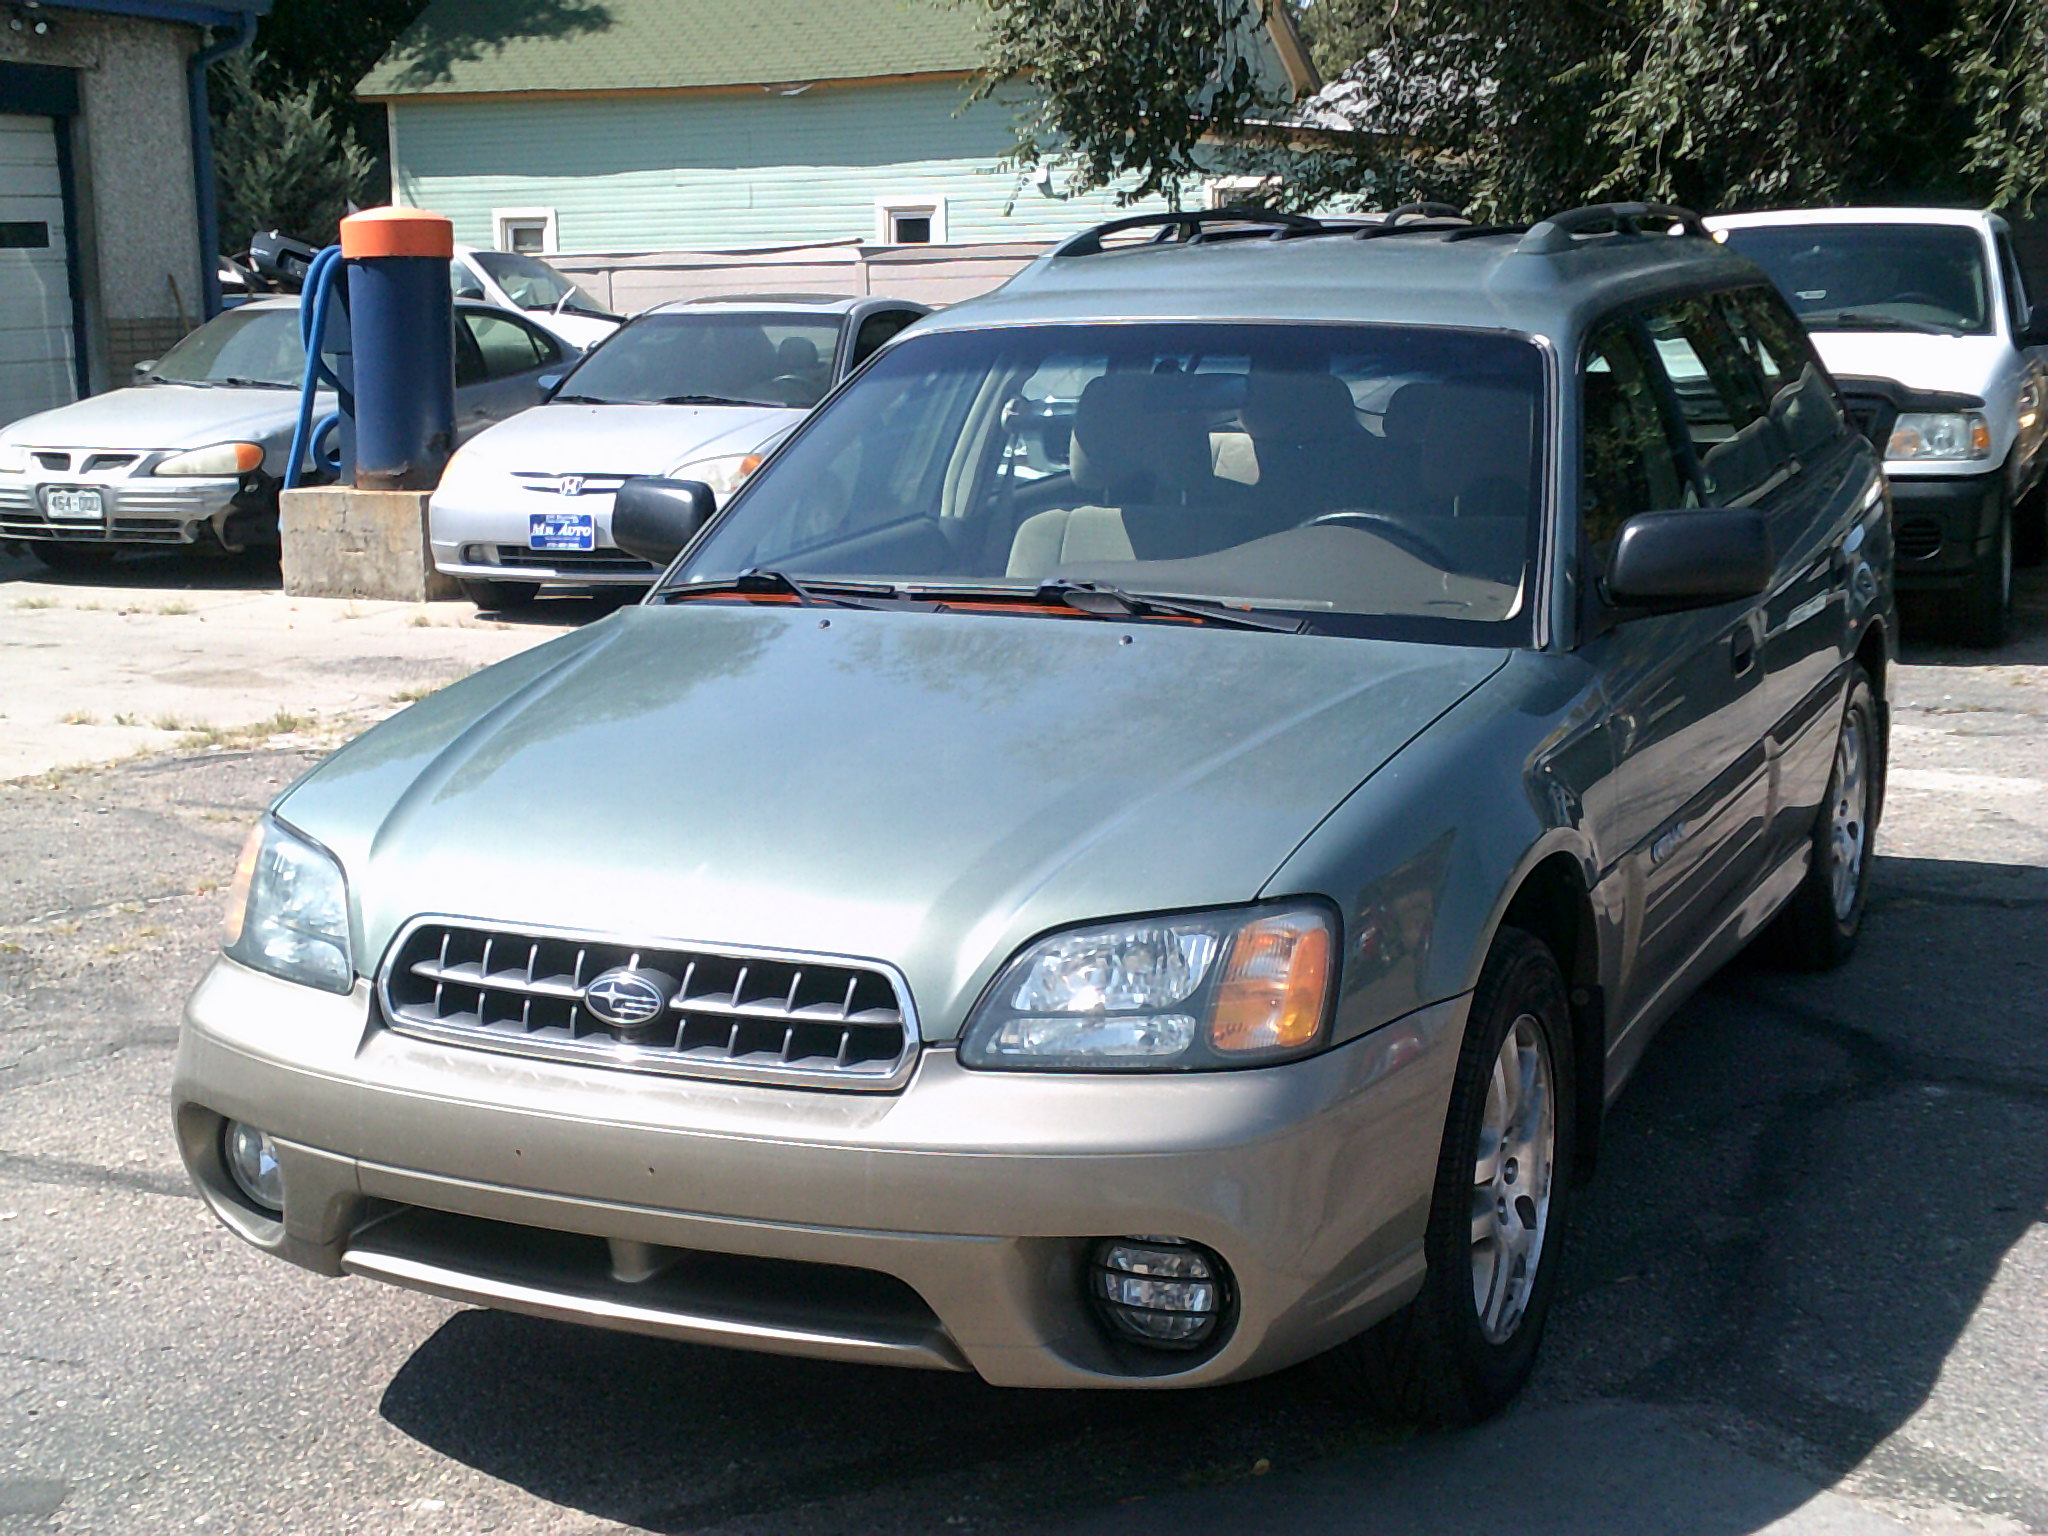 2004 subaru outback 4700 mr auto this all wheel drive outback is the perfect vehicle for all your colorado winter driving needs 105k 5 speed manual ac cd player vanachro Image collections